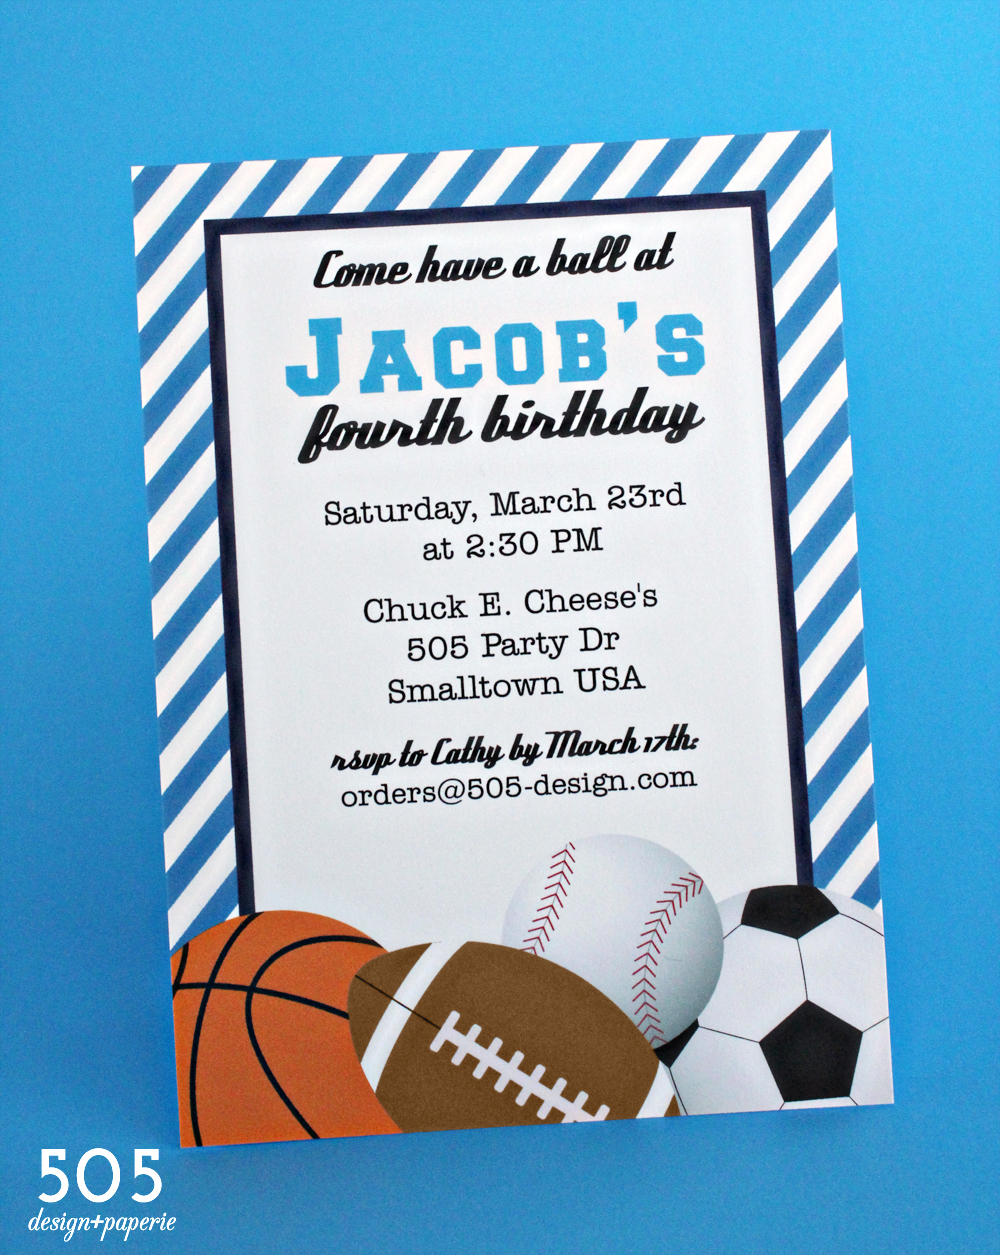 Boys Sports Invitation by 505 Design+Paperie